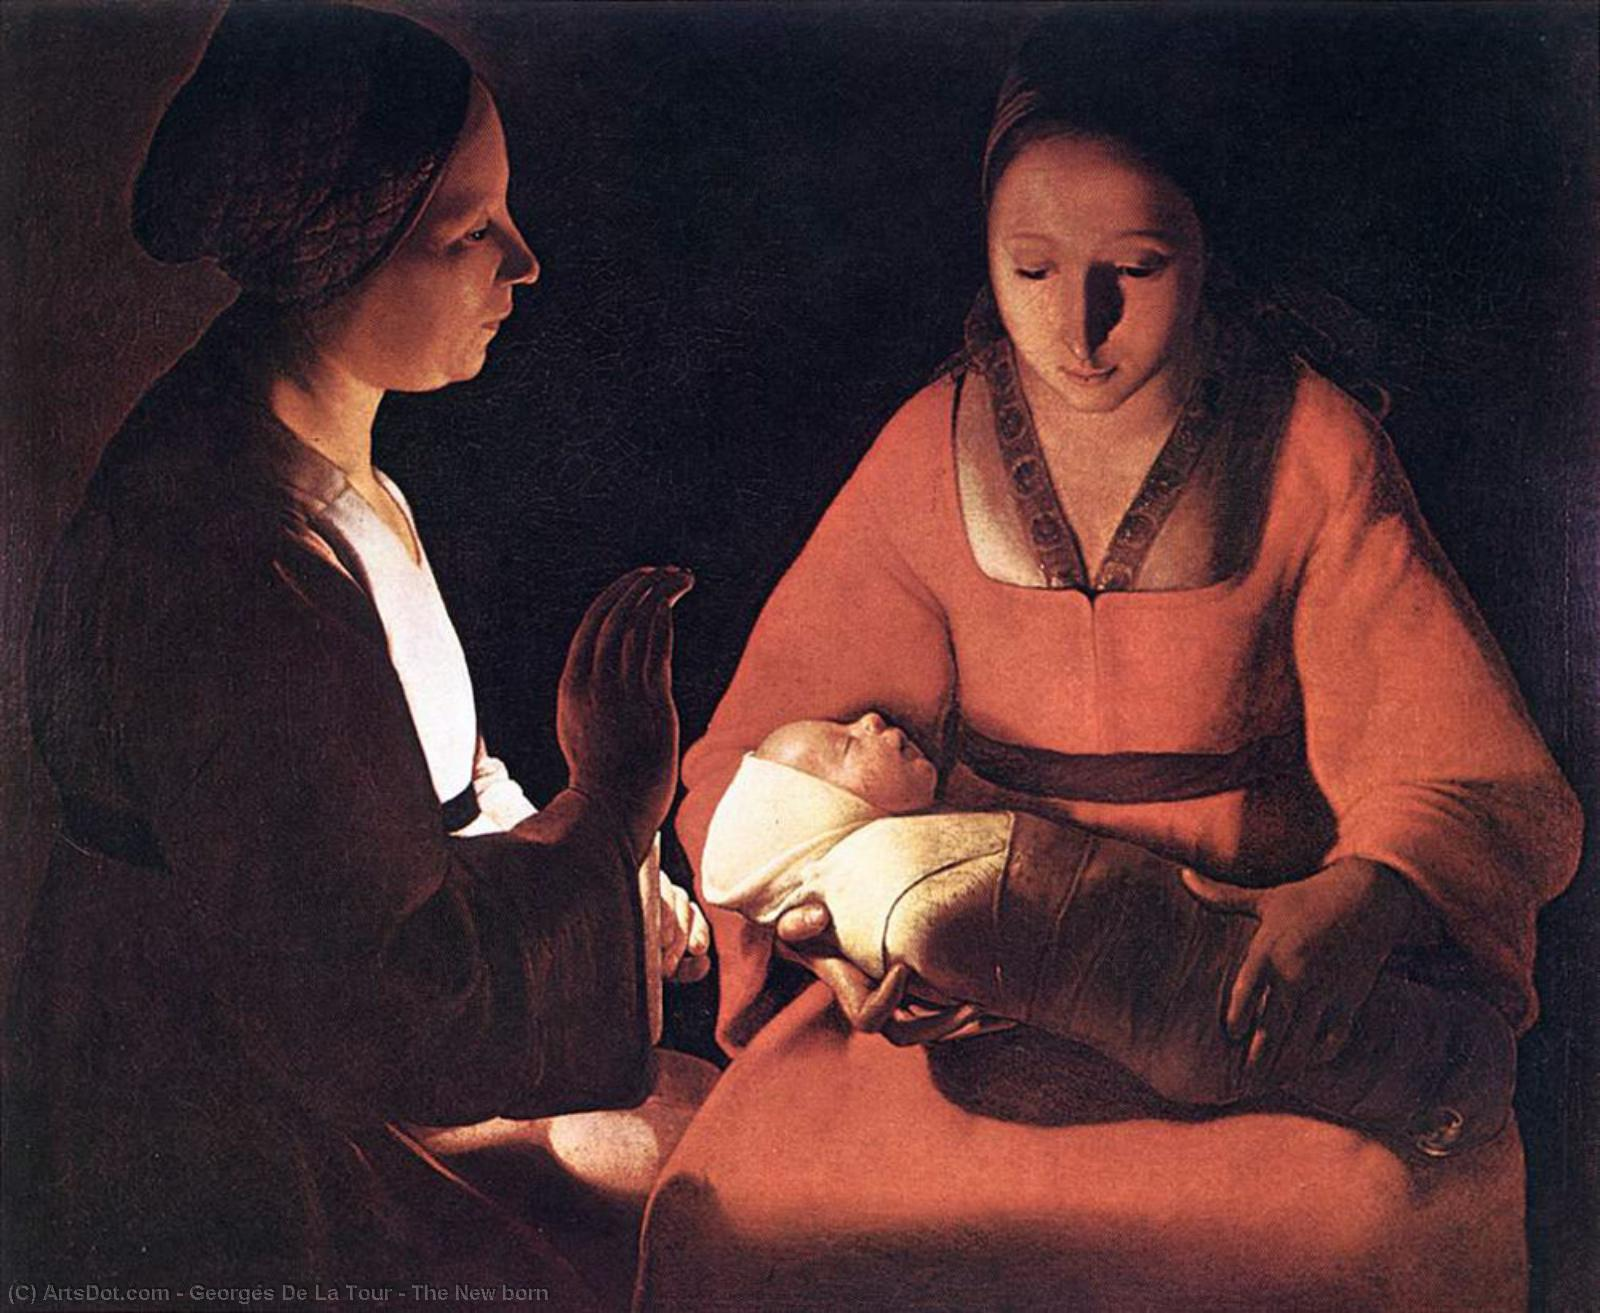 Wikioo.org - The Encyclopedia of Fine Arts - Painting, Artwork by Georges De La Tour - The New born